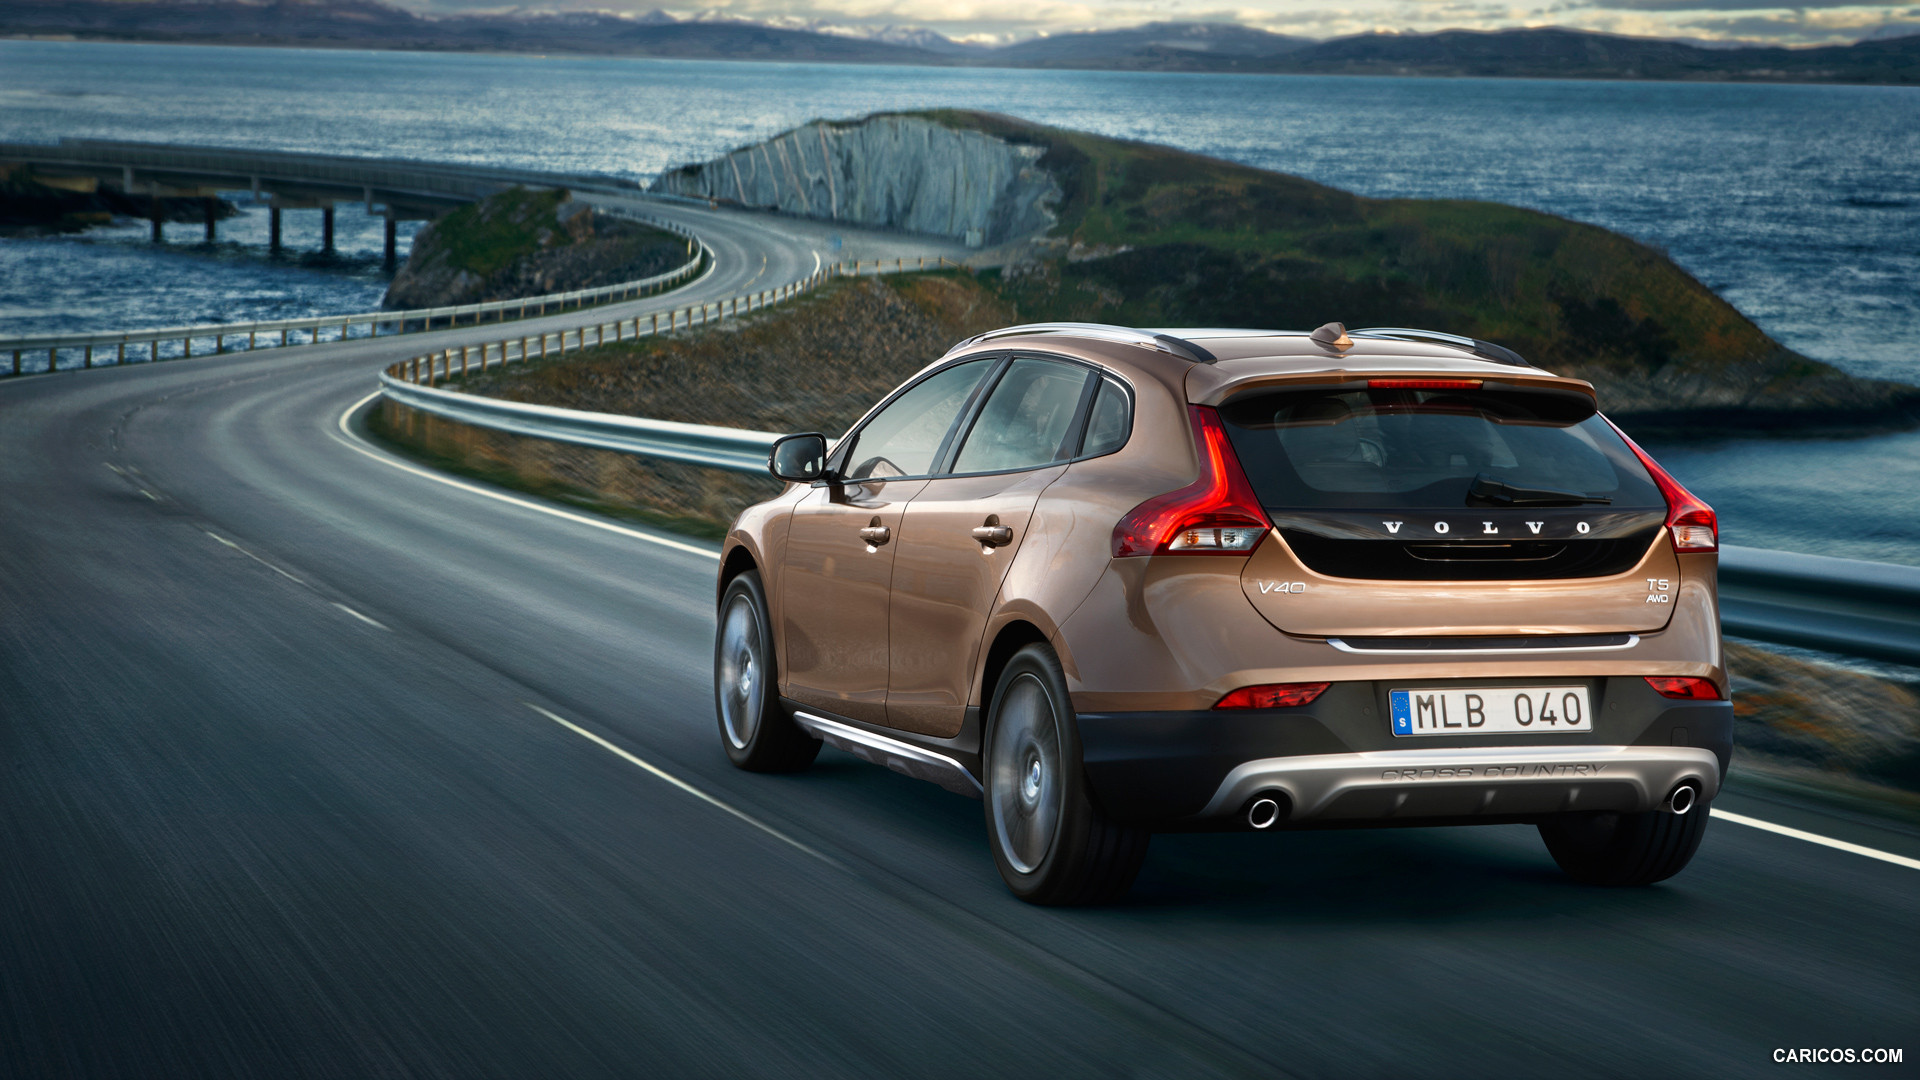 2013 Volvo V40 Cross Country   Rear HD Wallpaper 8 1920x1080